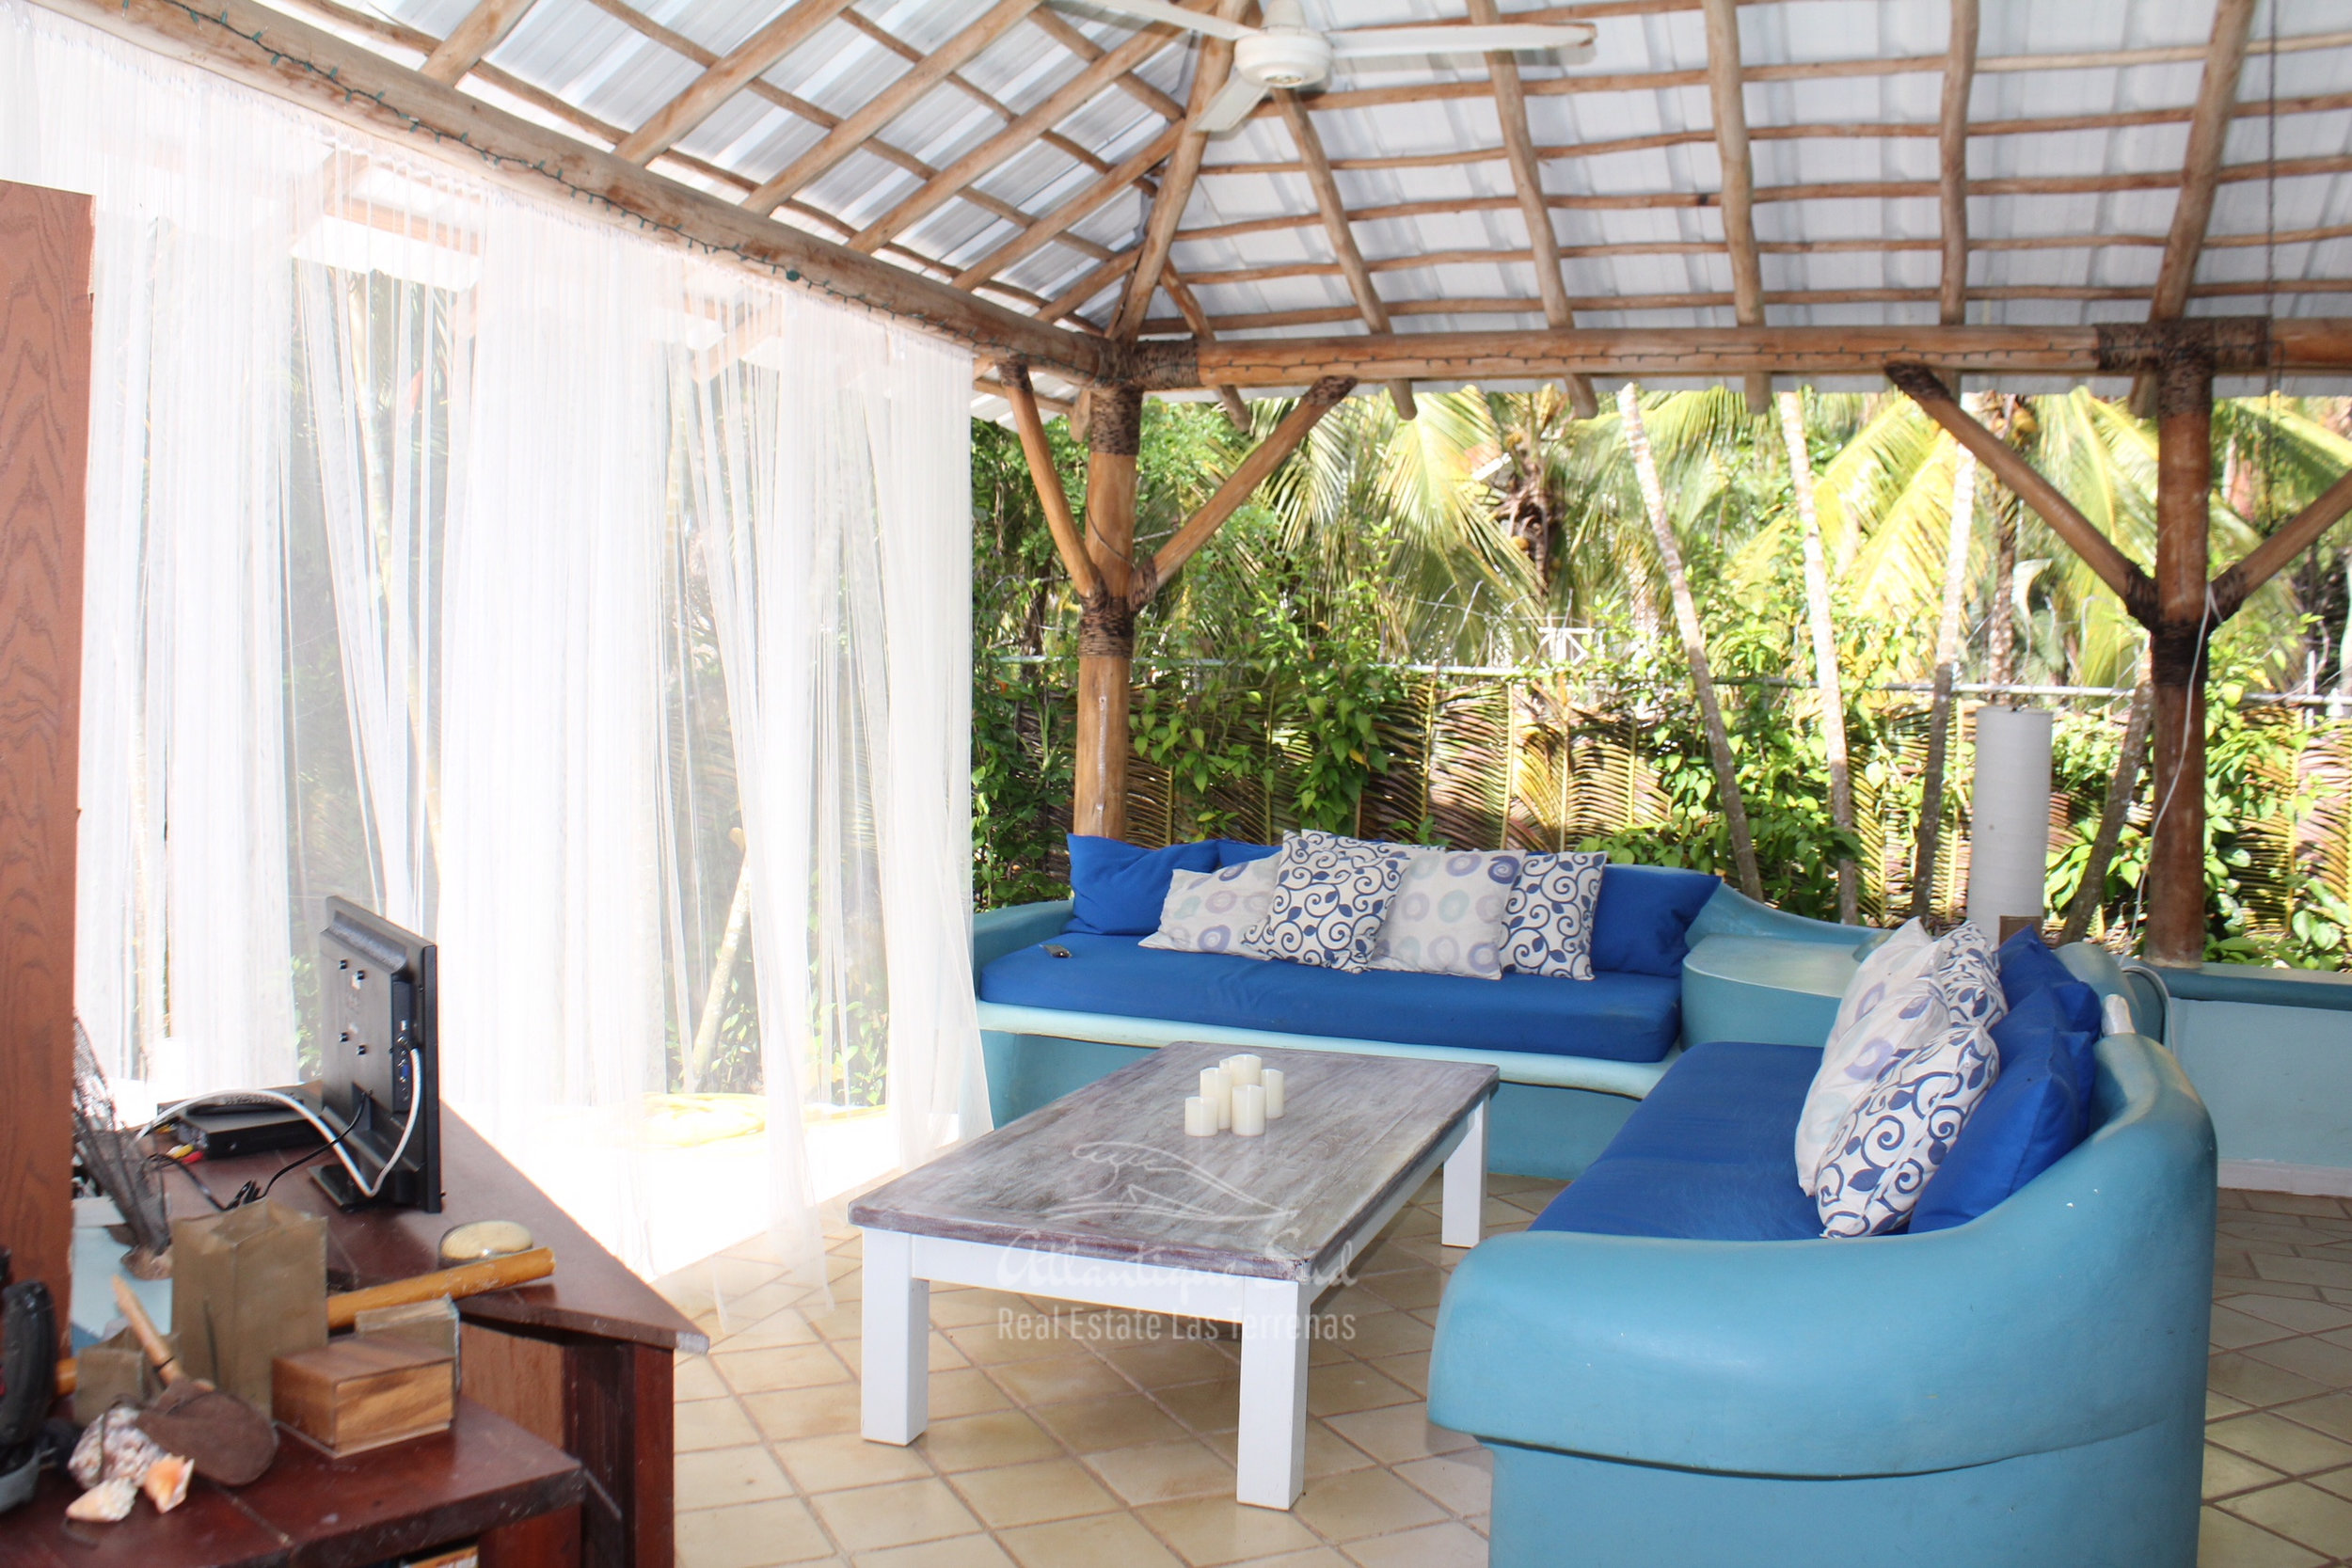 Domain of main villa with 5 separate bungalows ideal for bed & breakfast in Las Terrenas Real Estate Dominican Republic27.jpg